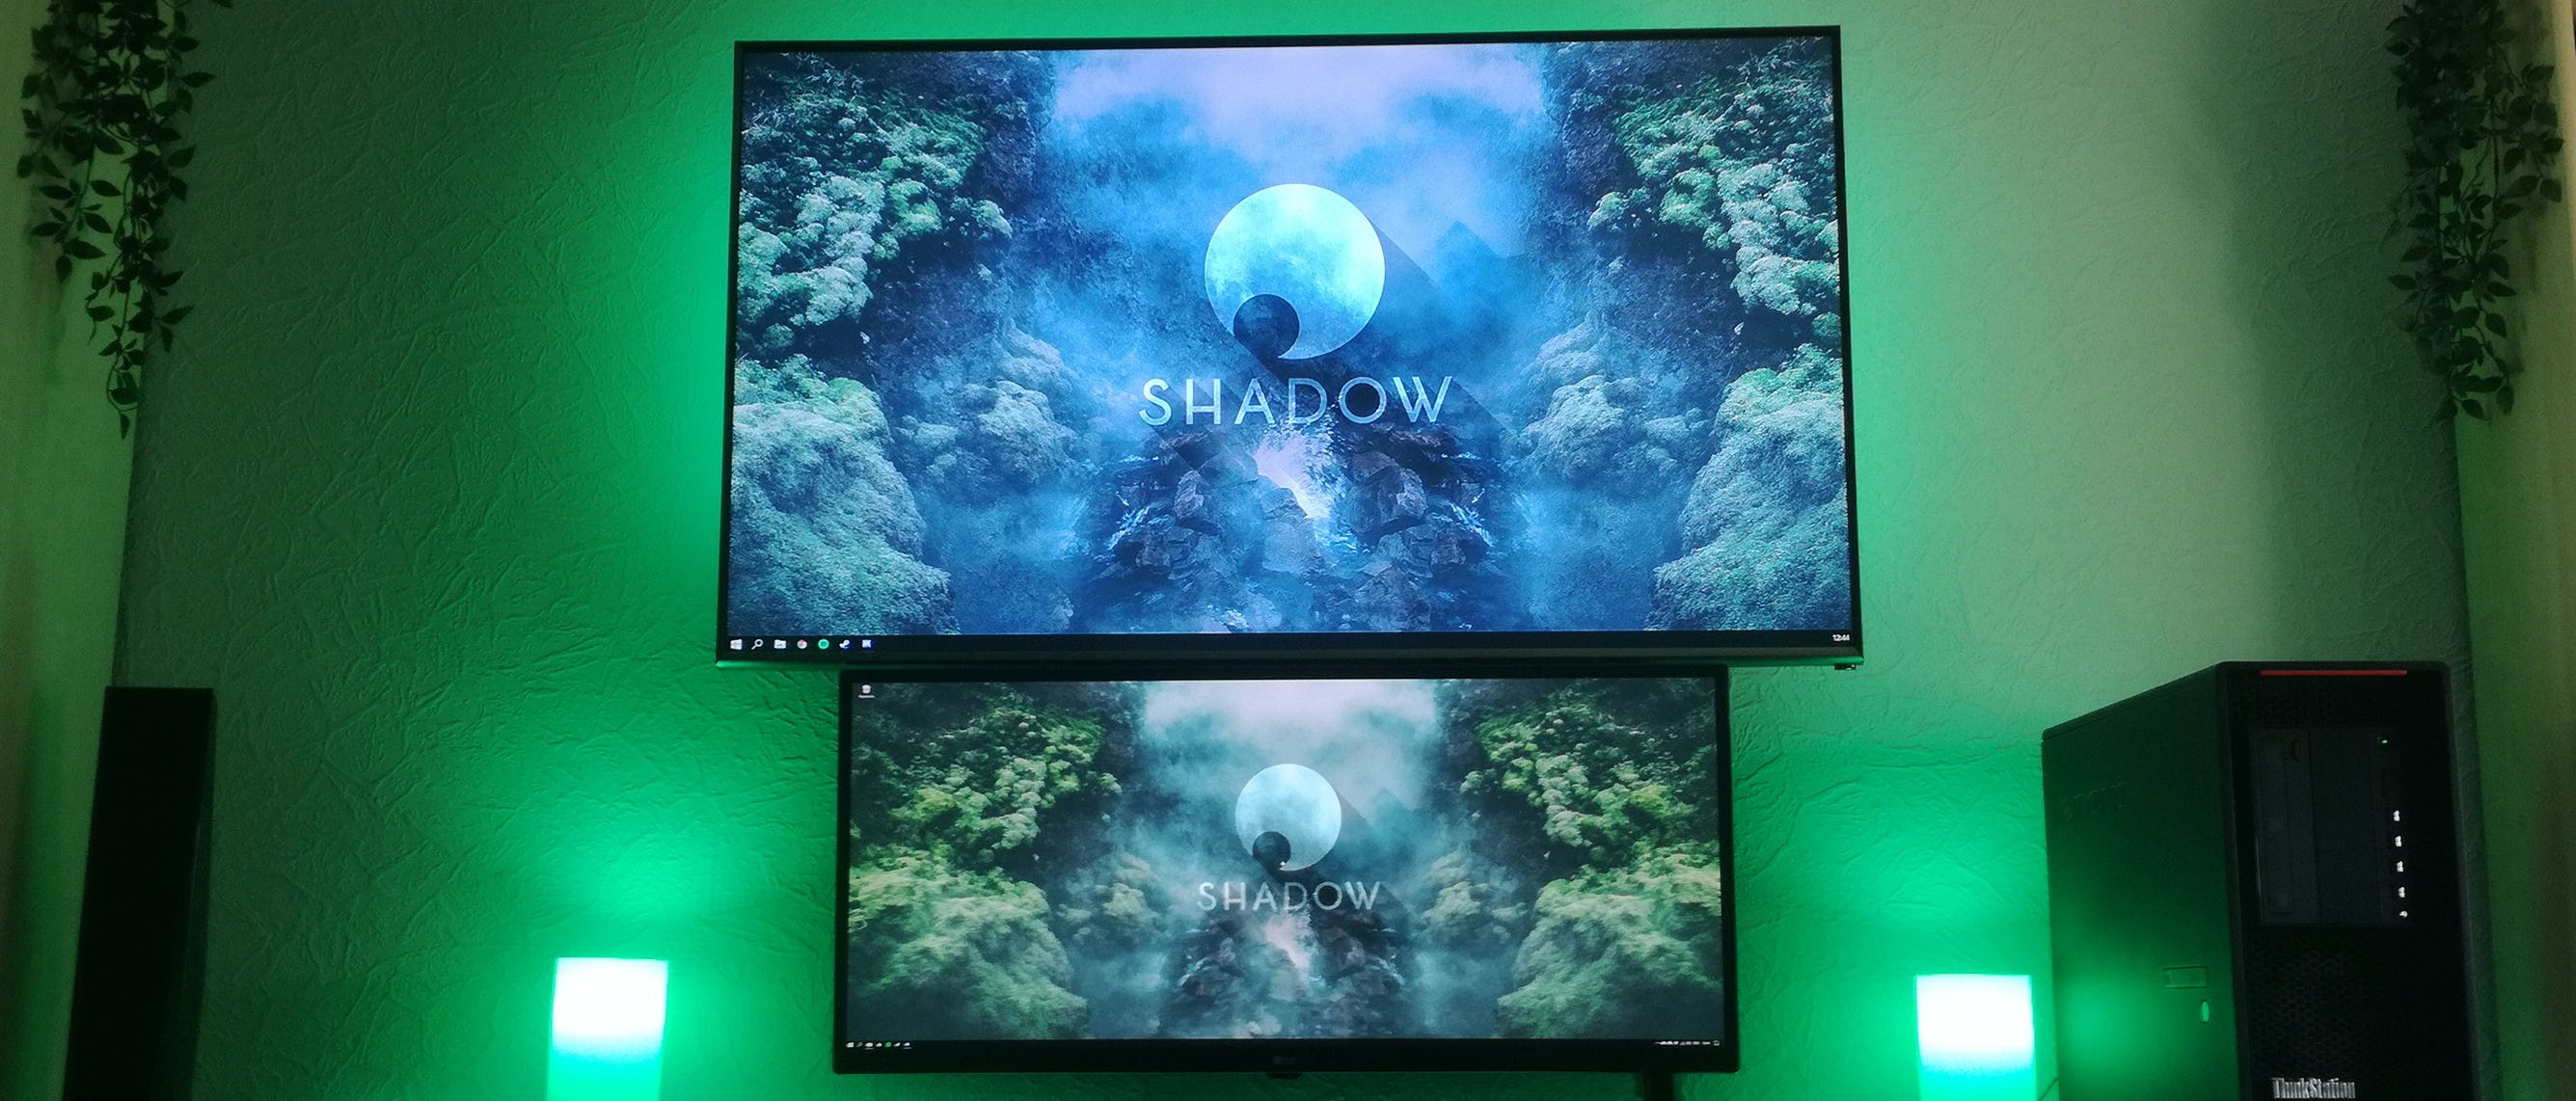 Looking back at the best Shadow setups from our community in 2018!